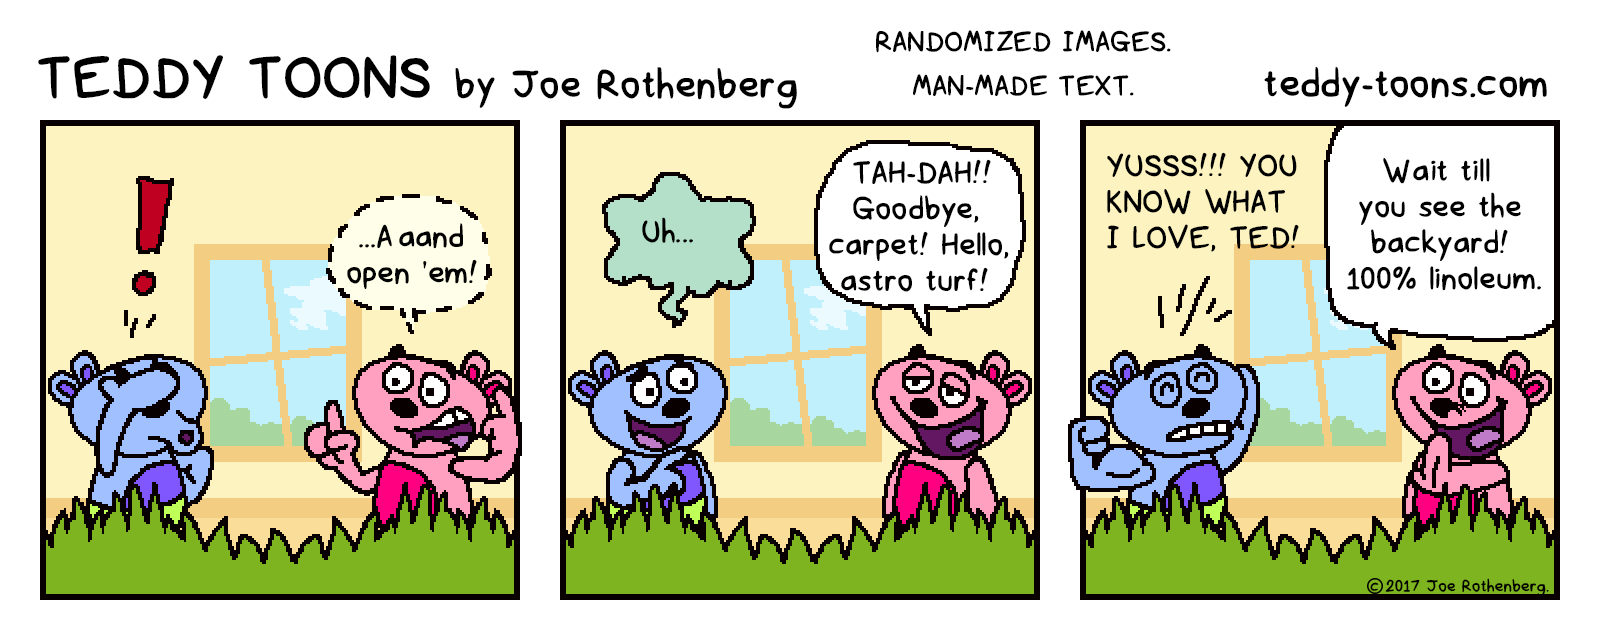 Teddy-Toons-022017.png